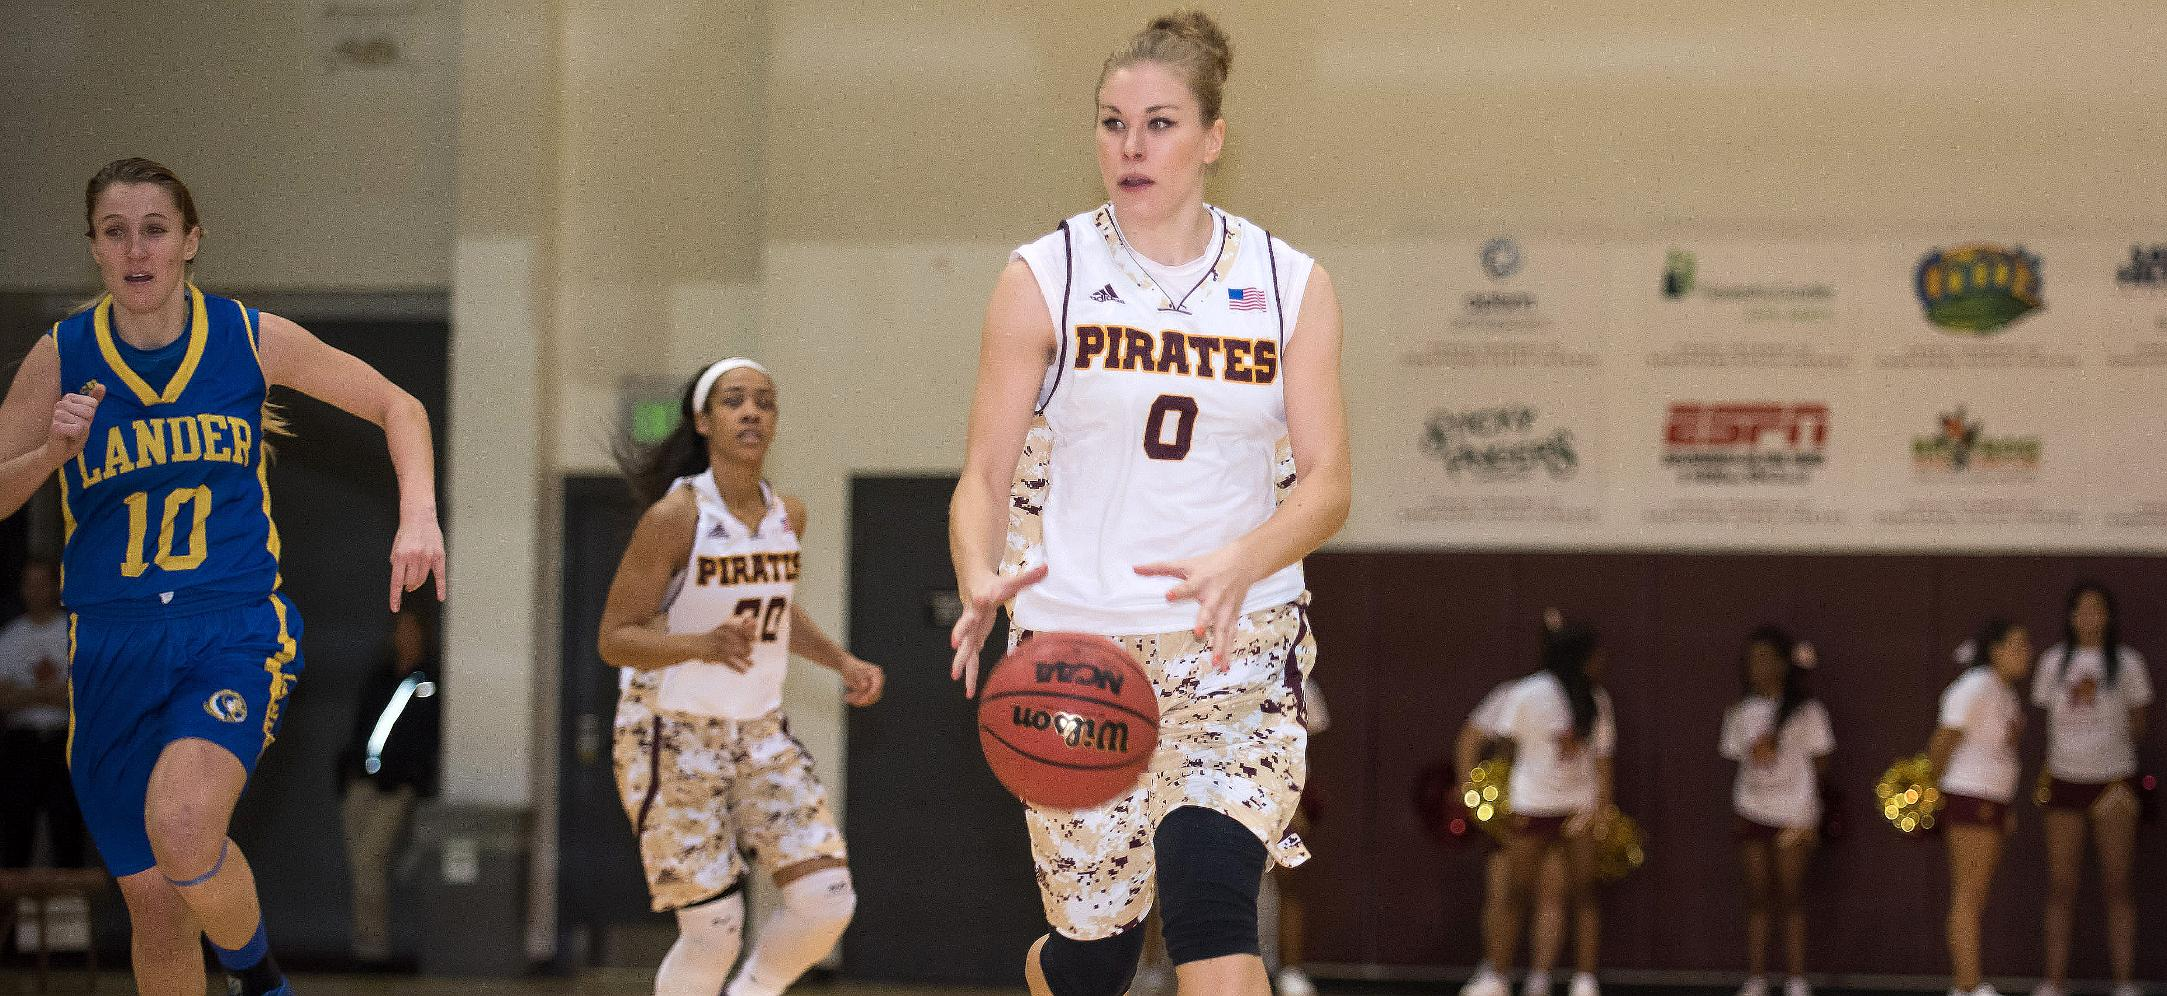 Women's Basketball Hangs Tough In 66-57 Exhibition Loss At College Of Charleston Wednesday